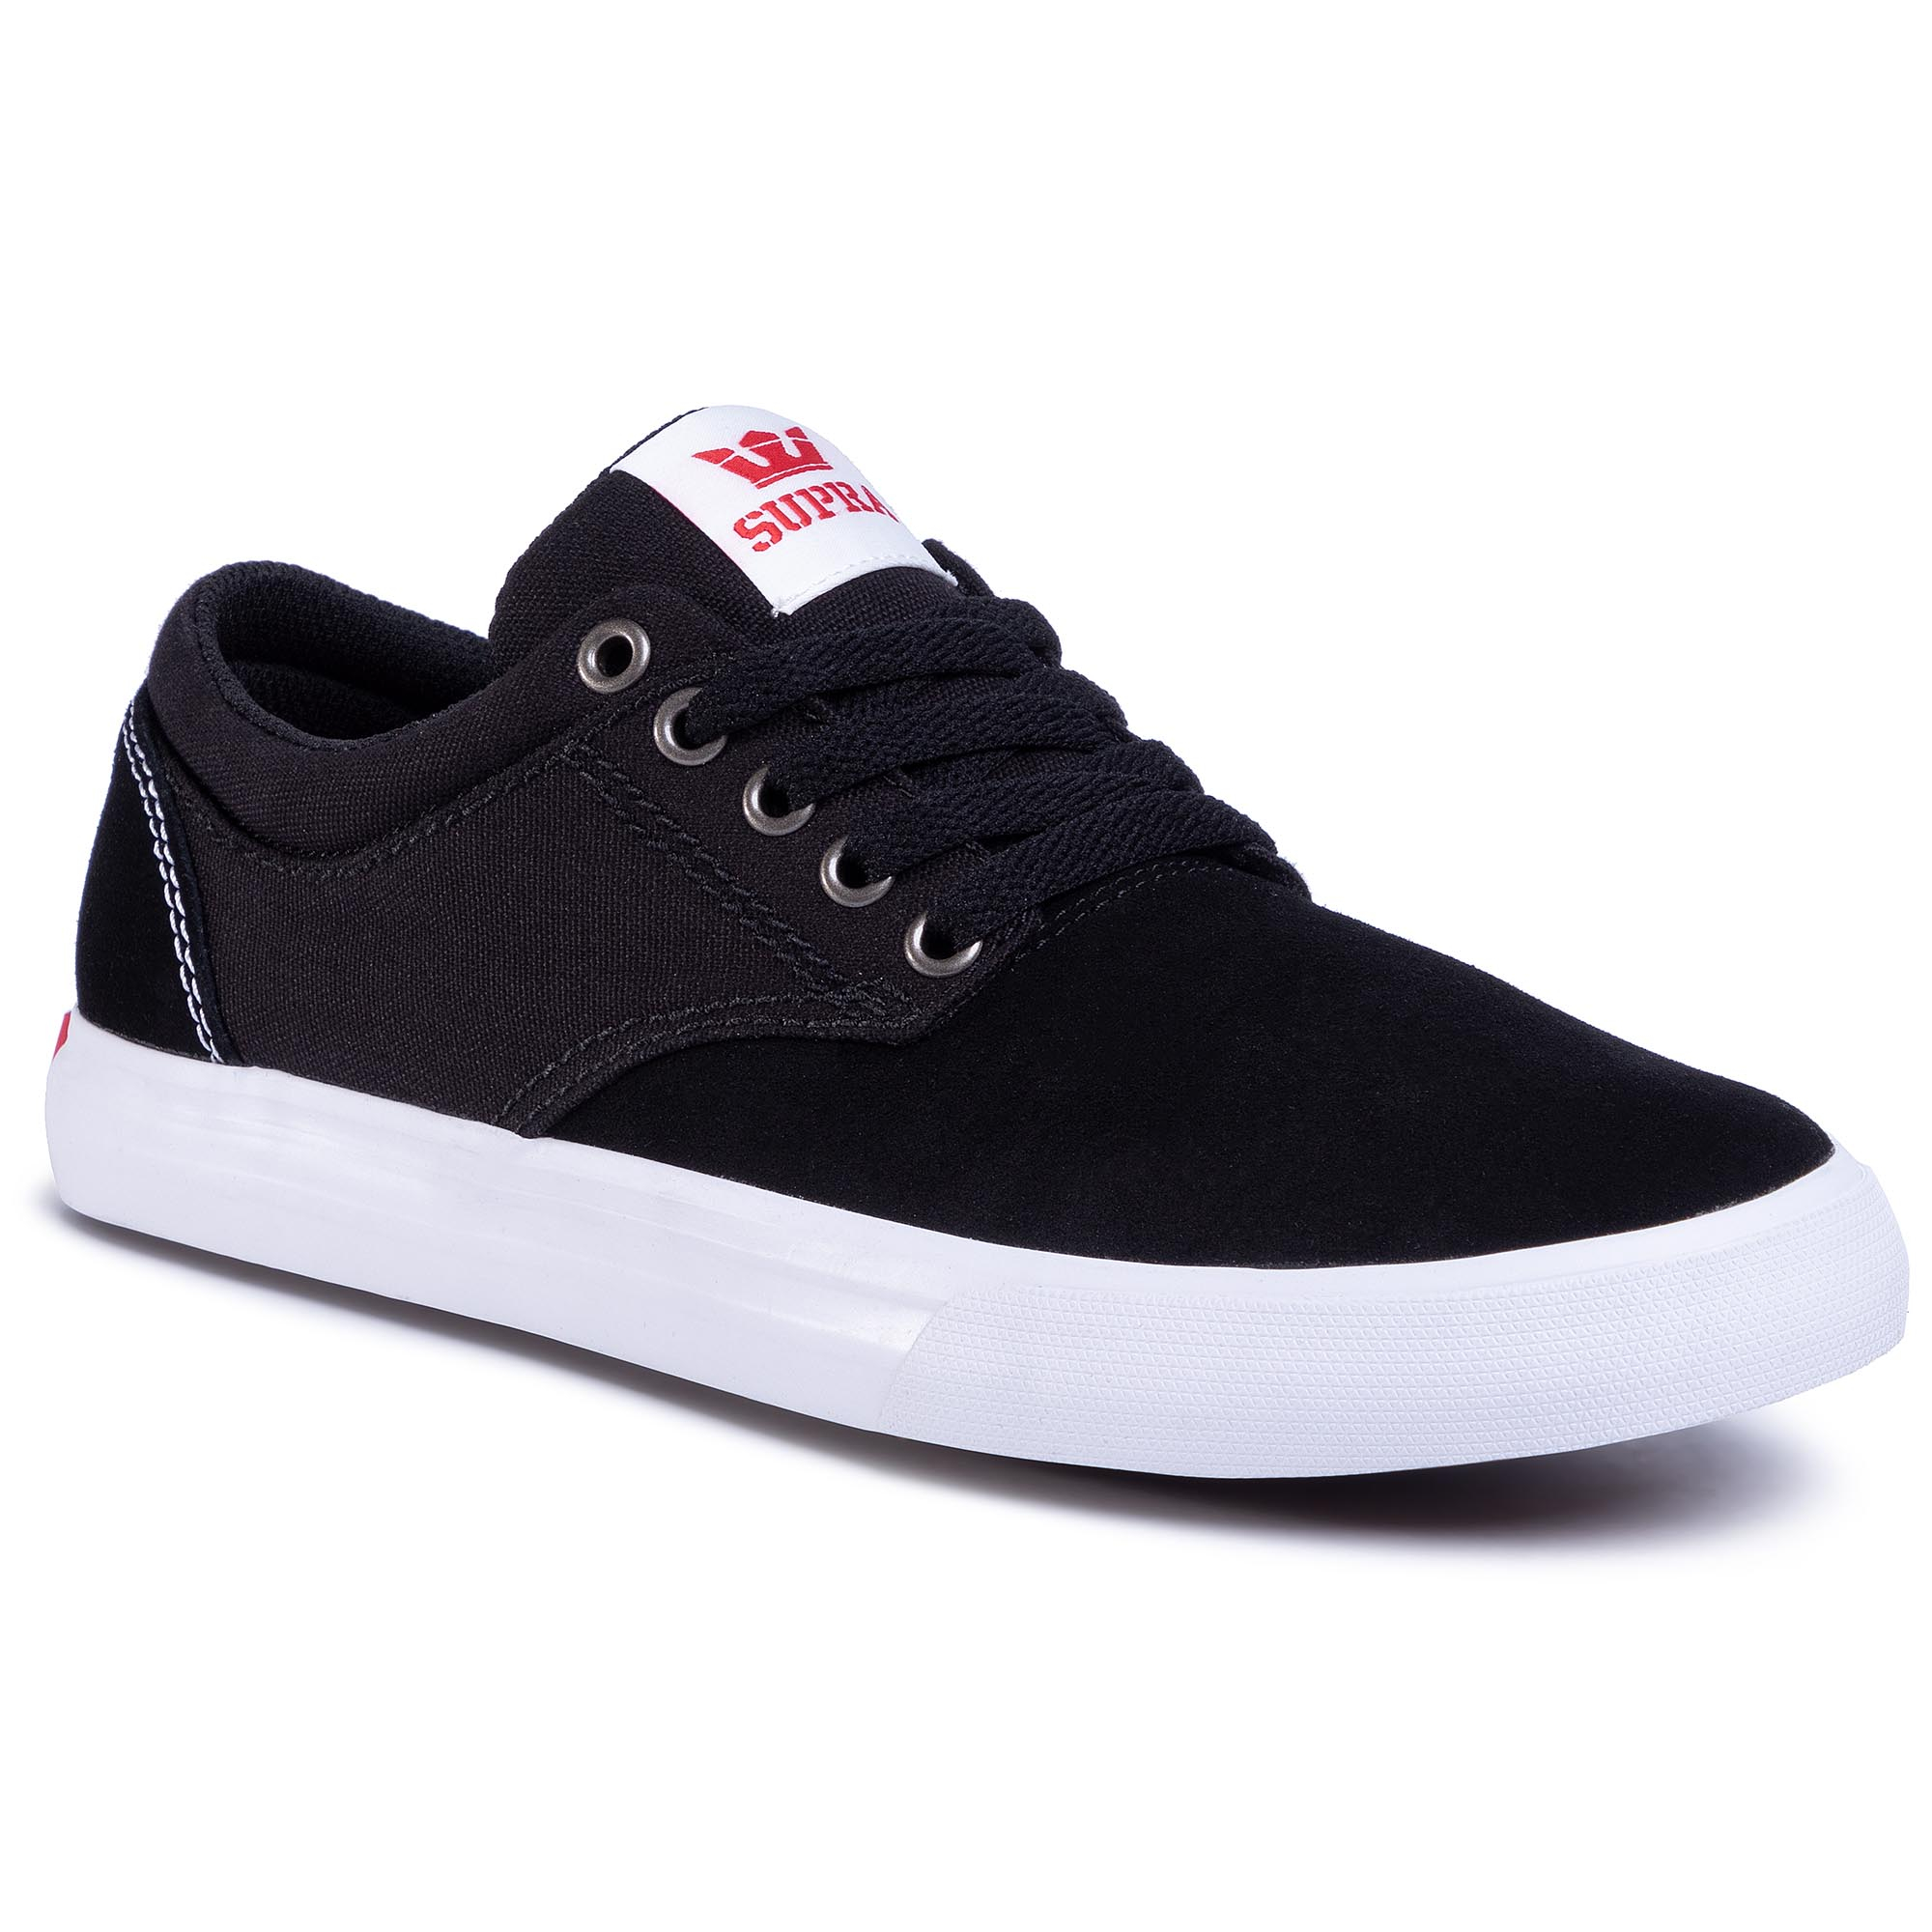 Teniși Supra - Chino 08051-035-M Black/Red/White imagine epantofi.ro 2021